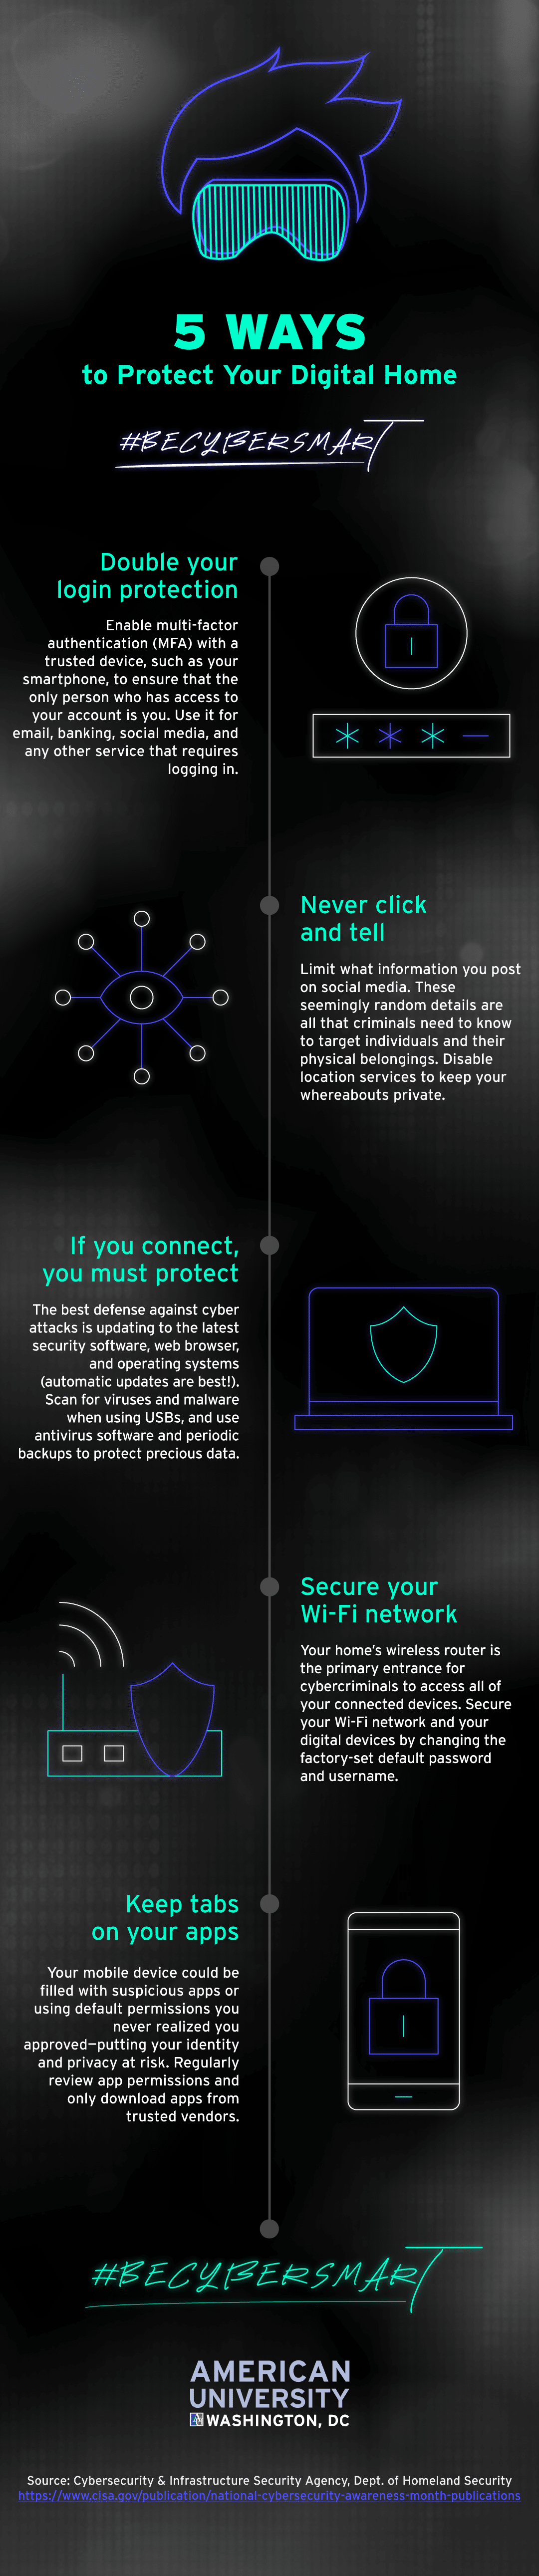 Protect your digital home